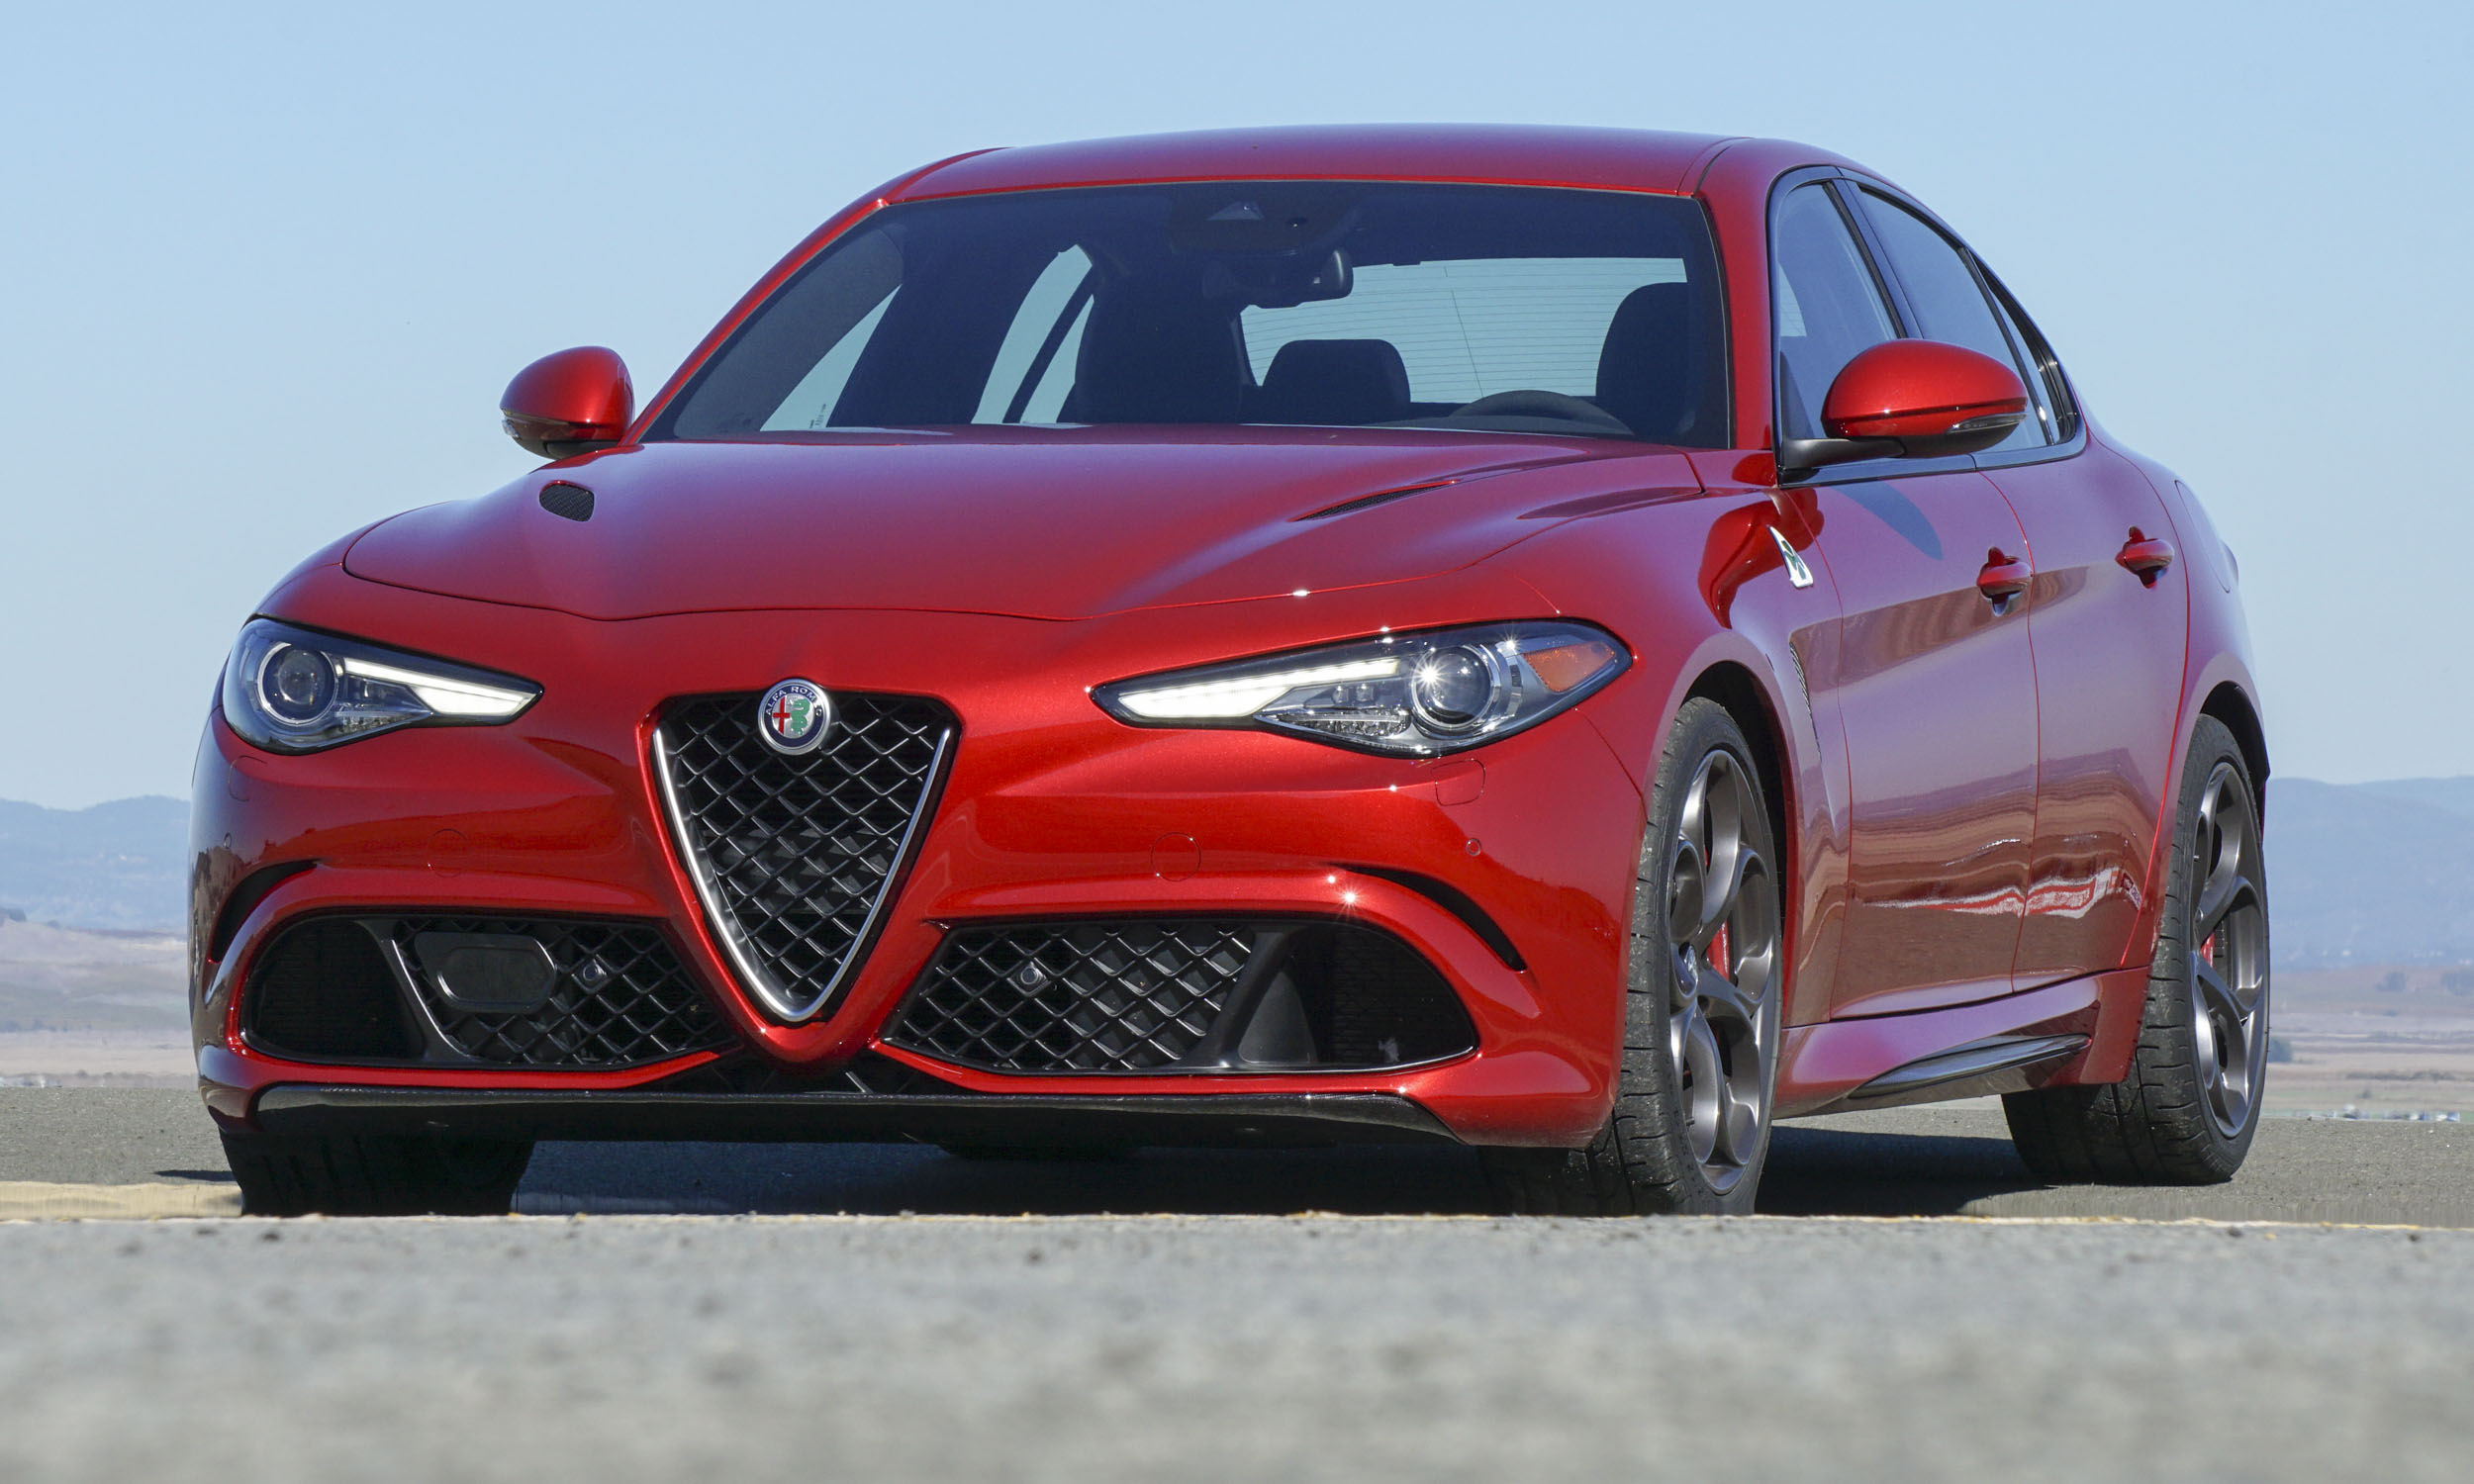 2017 alfa romeo giulia first drive review autonxt. Black Bedroom Furniture Sets. Home Design Ideas